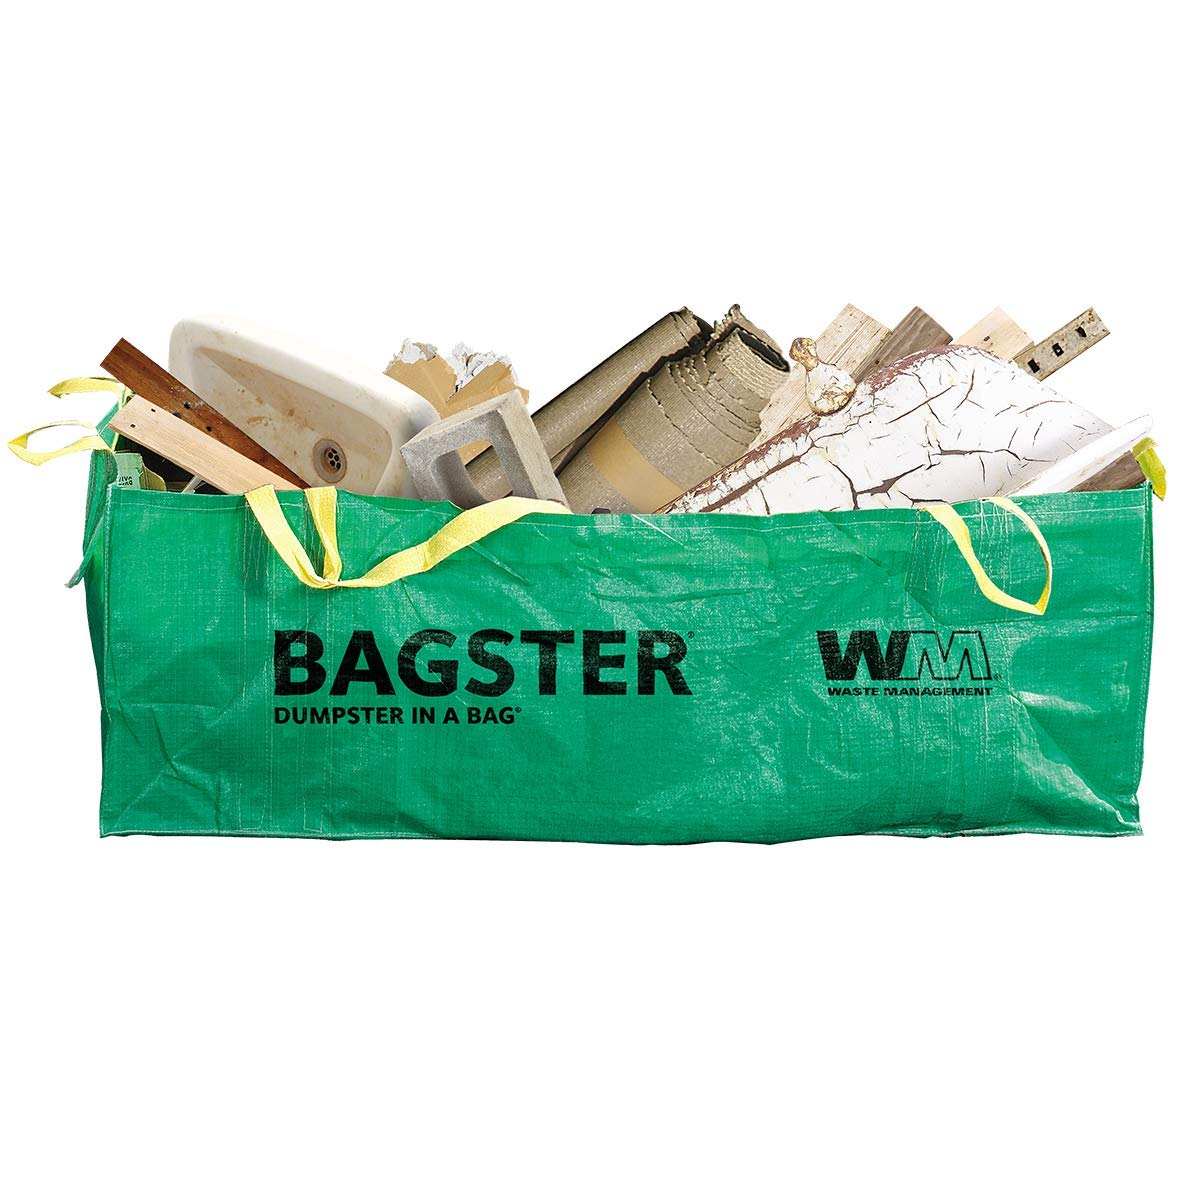 BAGSTER 3CUYD Dumpster in a Bag, Green by BAGSTER